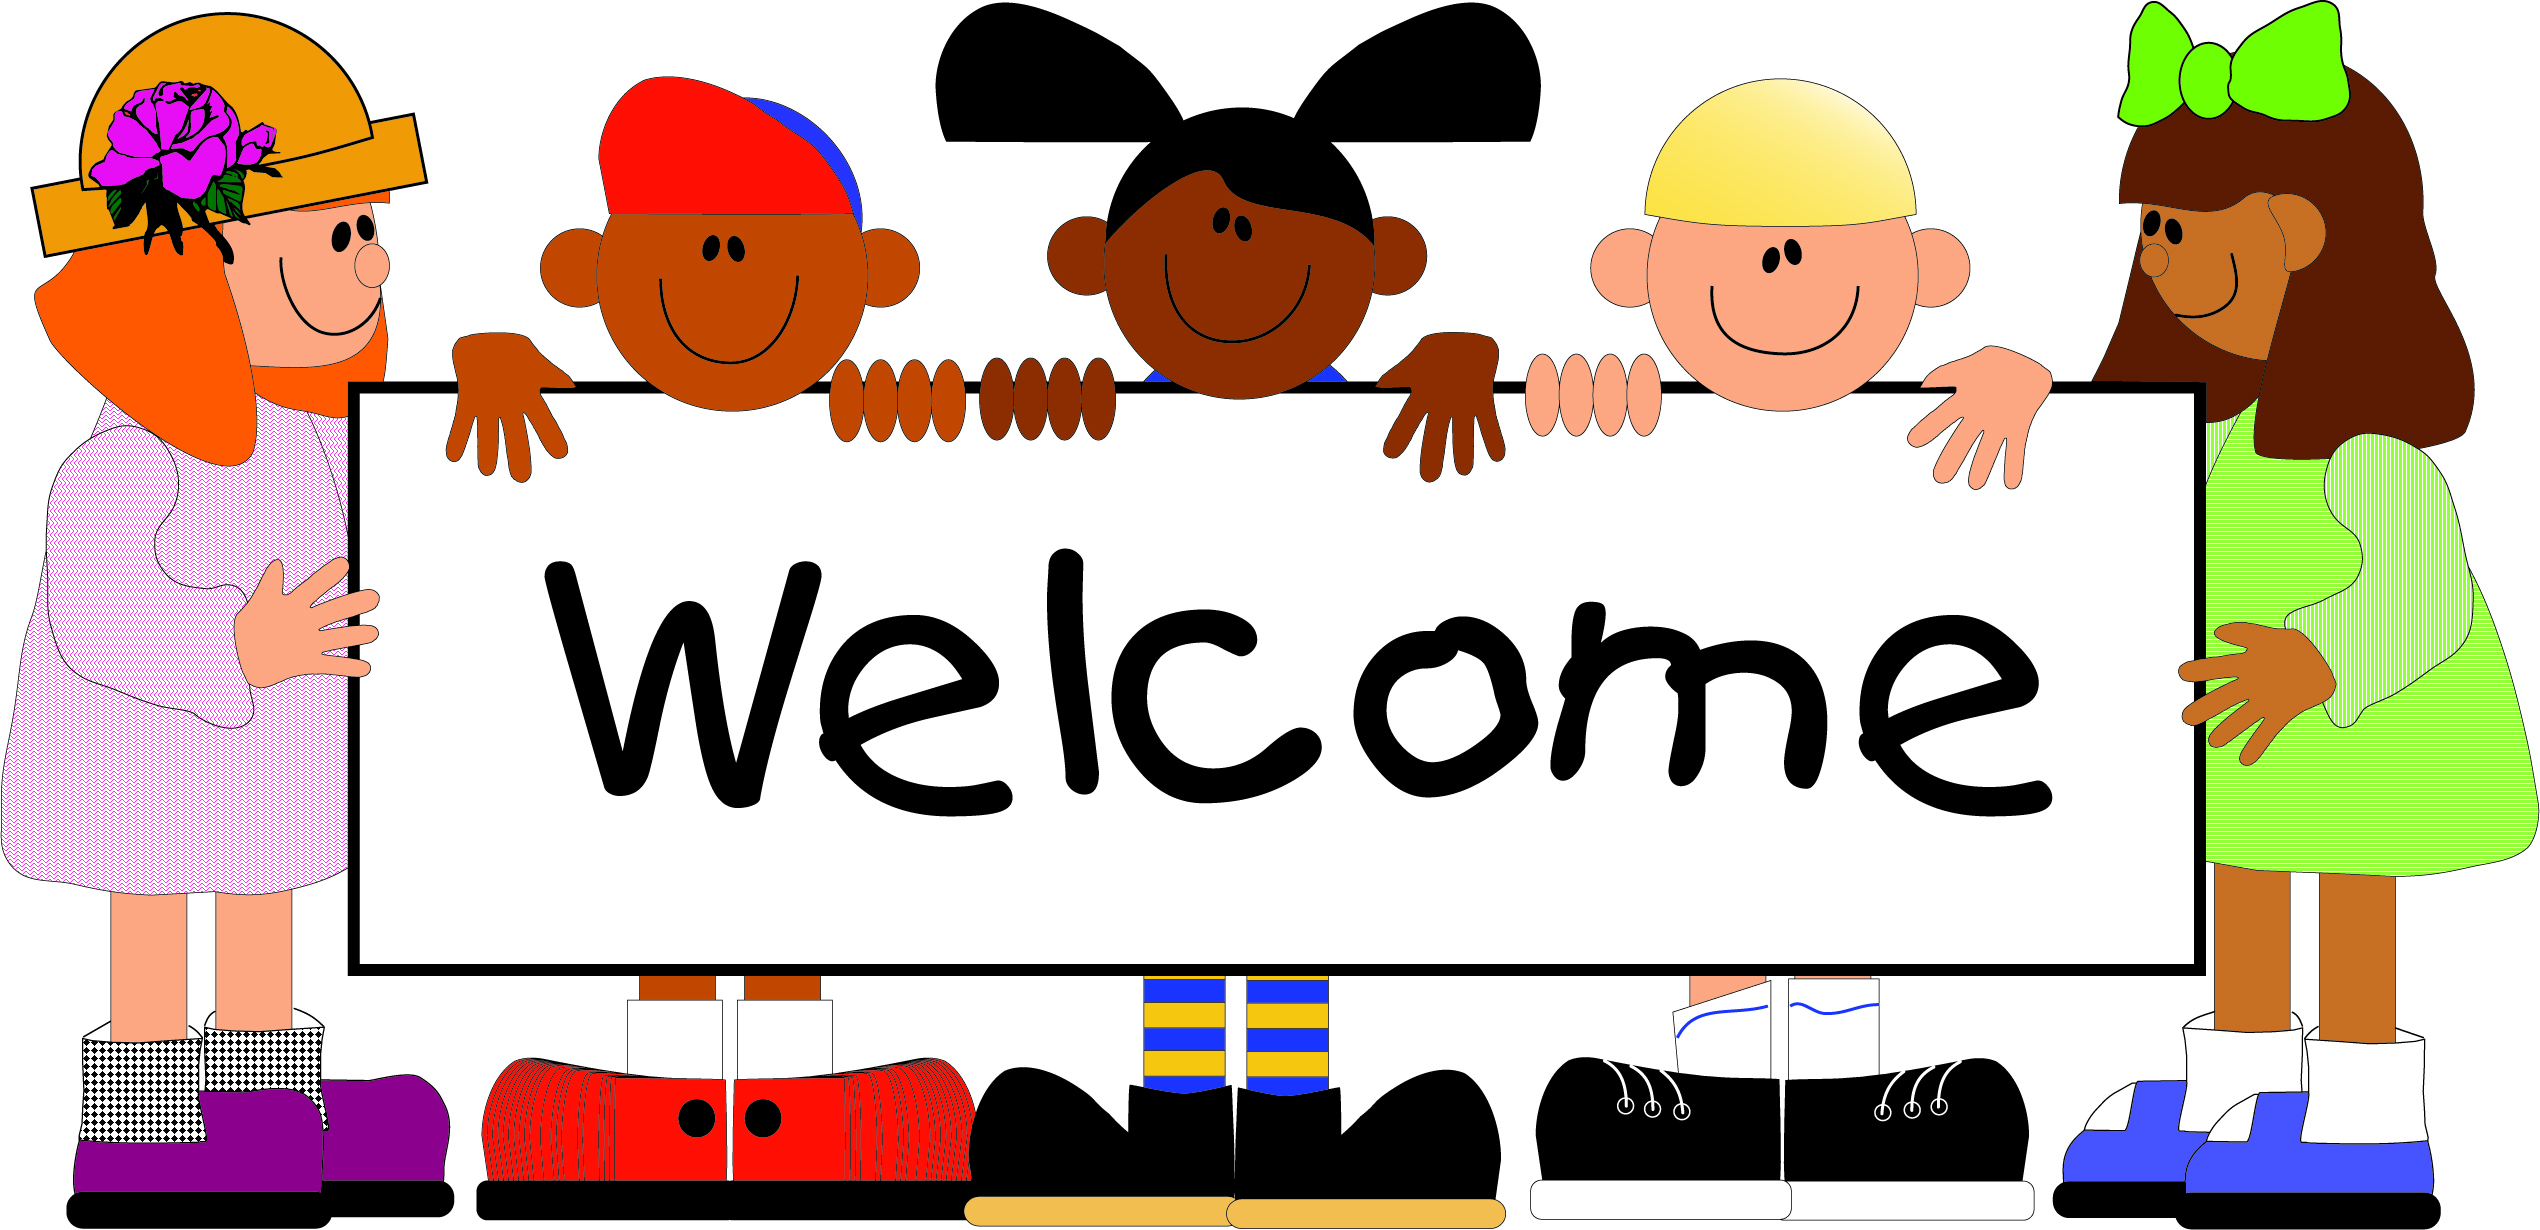 Kids-With-Welcome-Banner.jpg